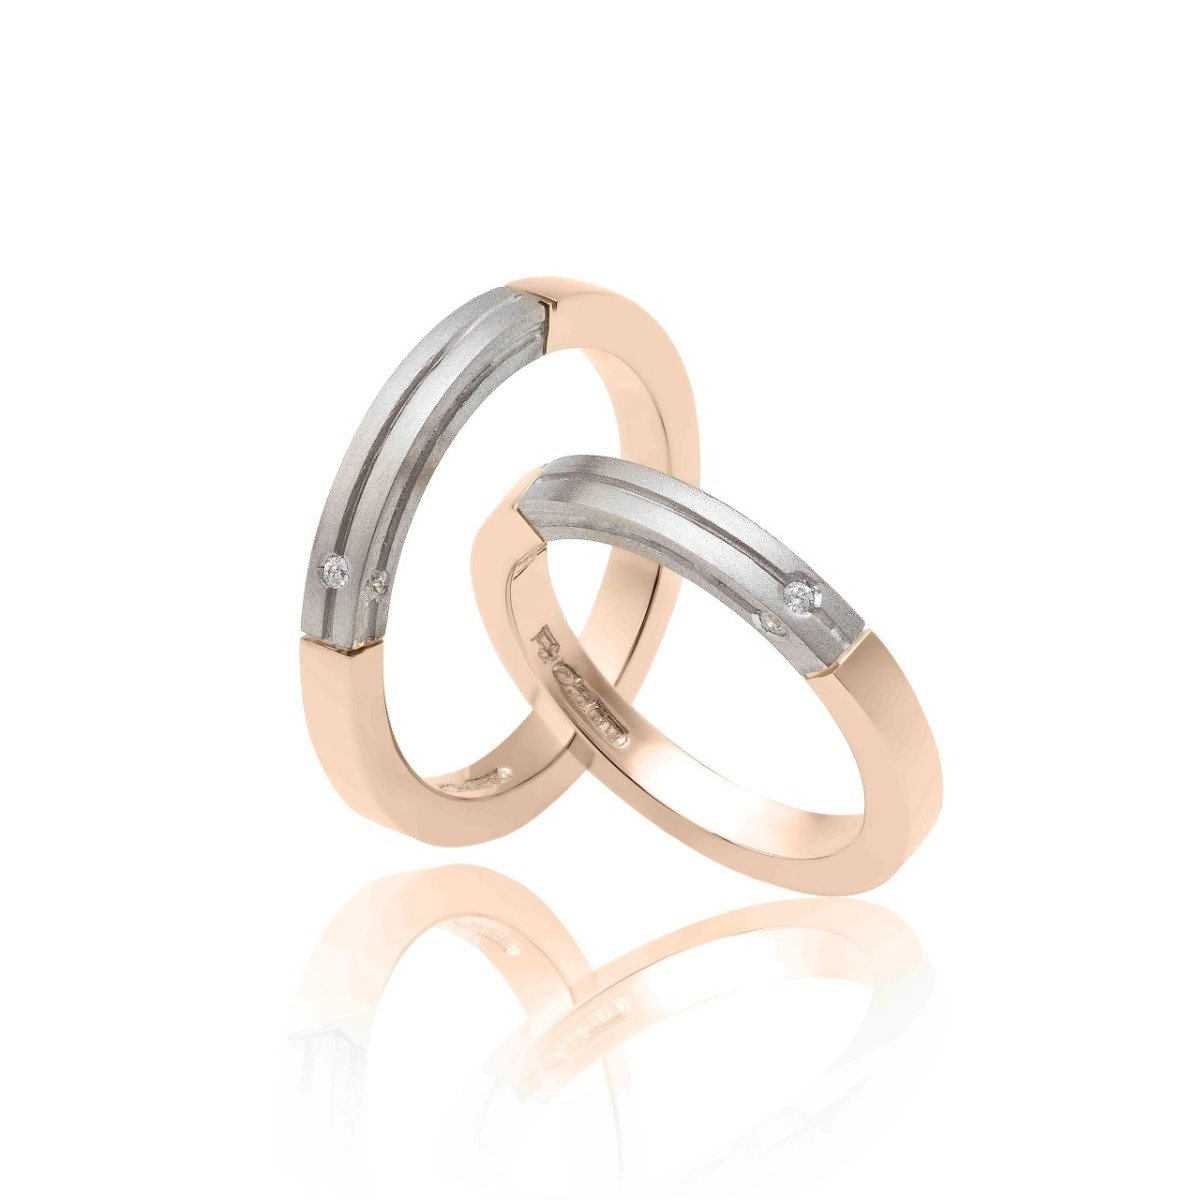 FaCad'oro WR-23 14ct Gold Wedding Rings - Goldy Jewelry Store